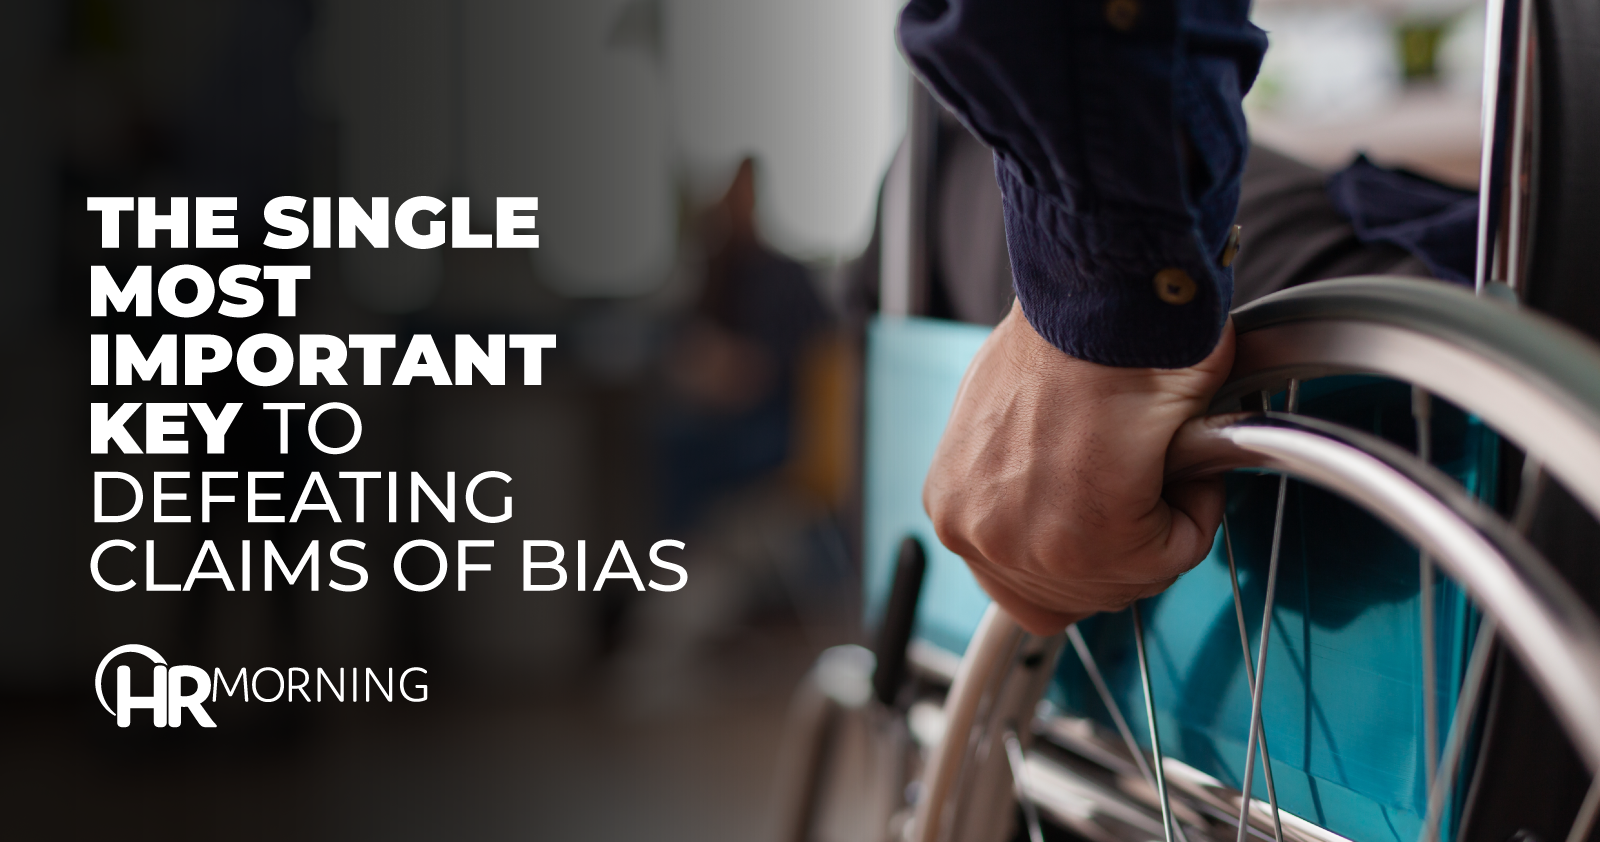 the single most important key to defeating claims of bias